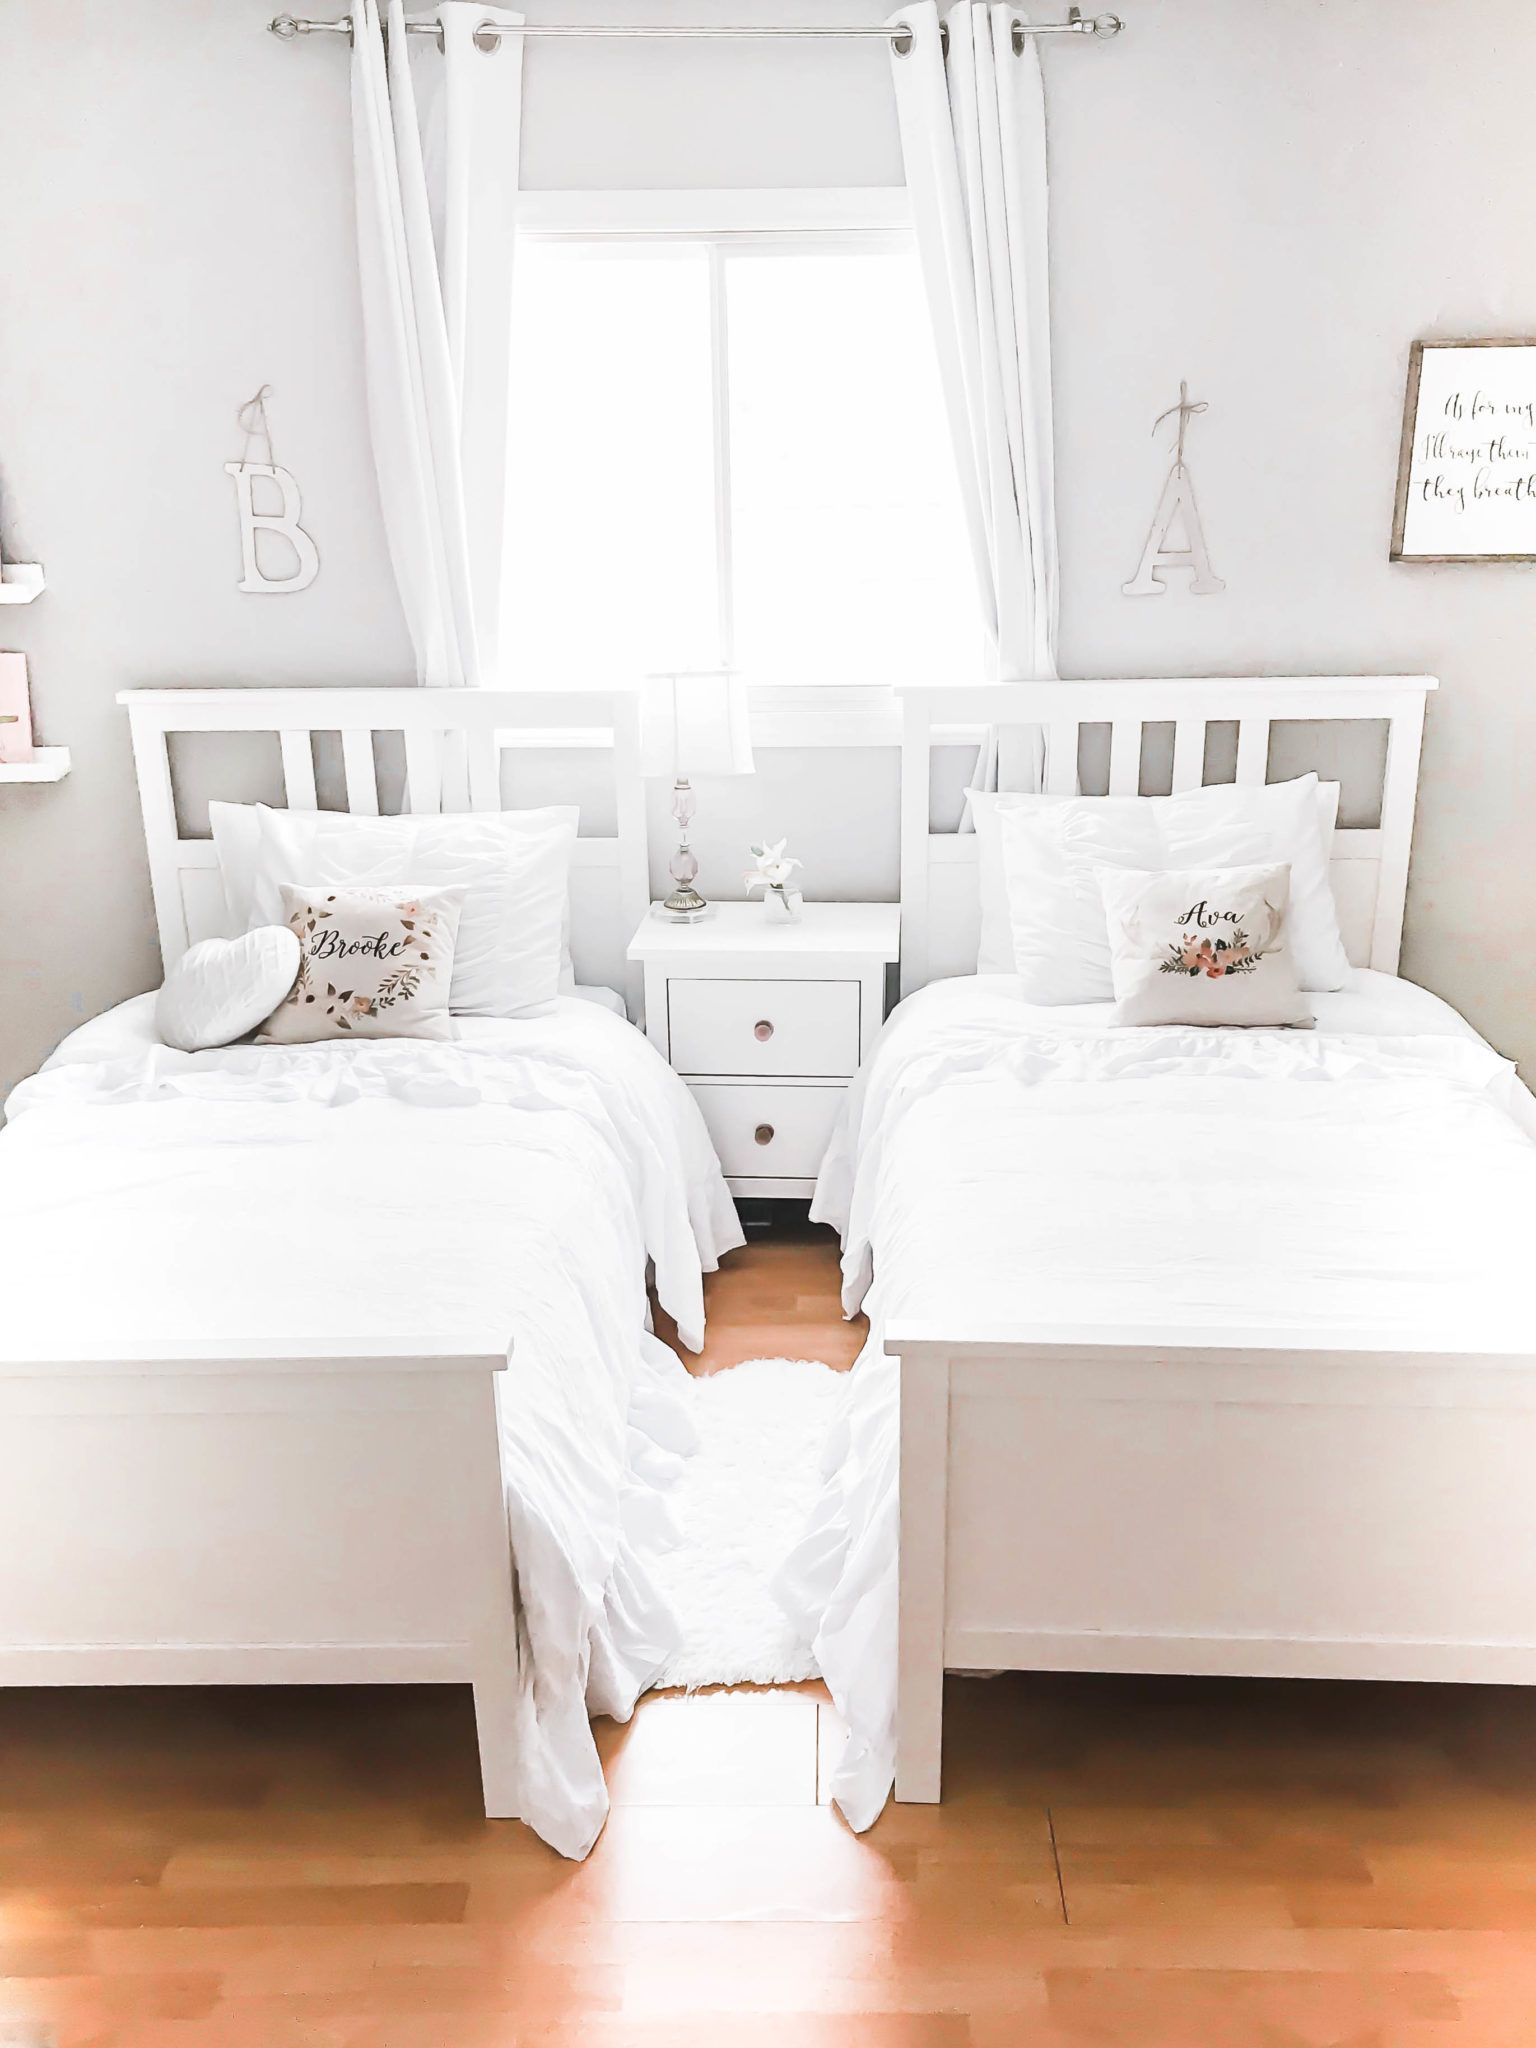 Cozy and Whimsical Girls Shared Bedroom Reveal in 2020